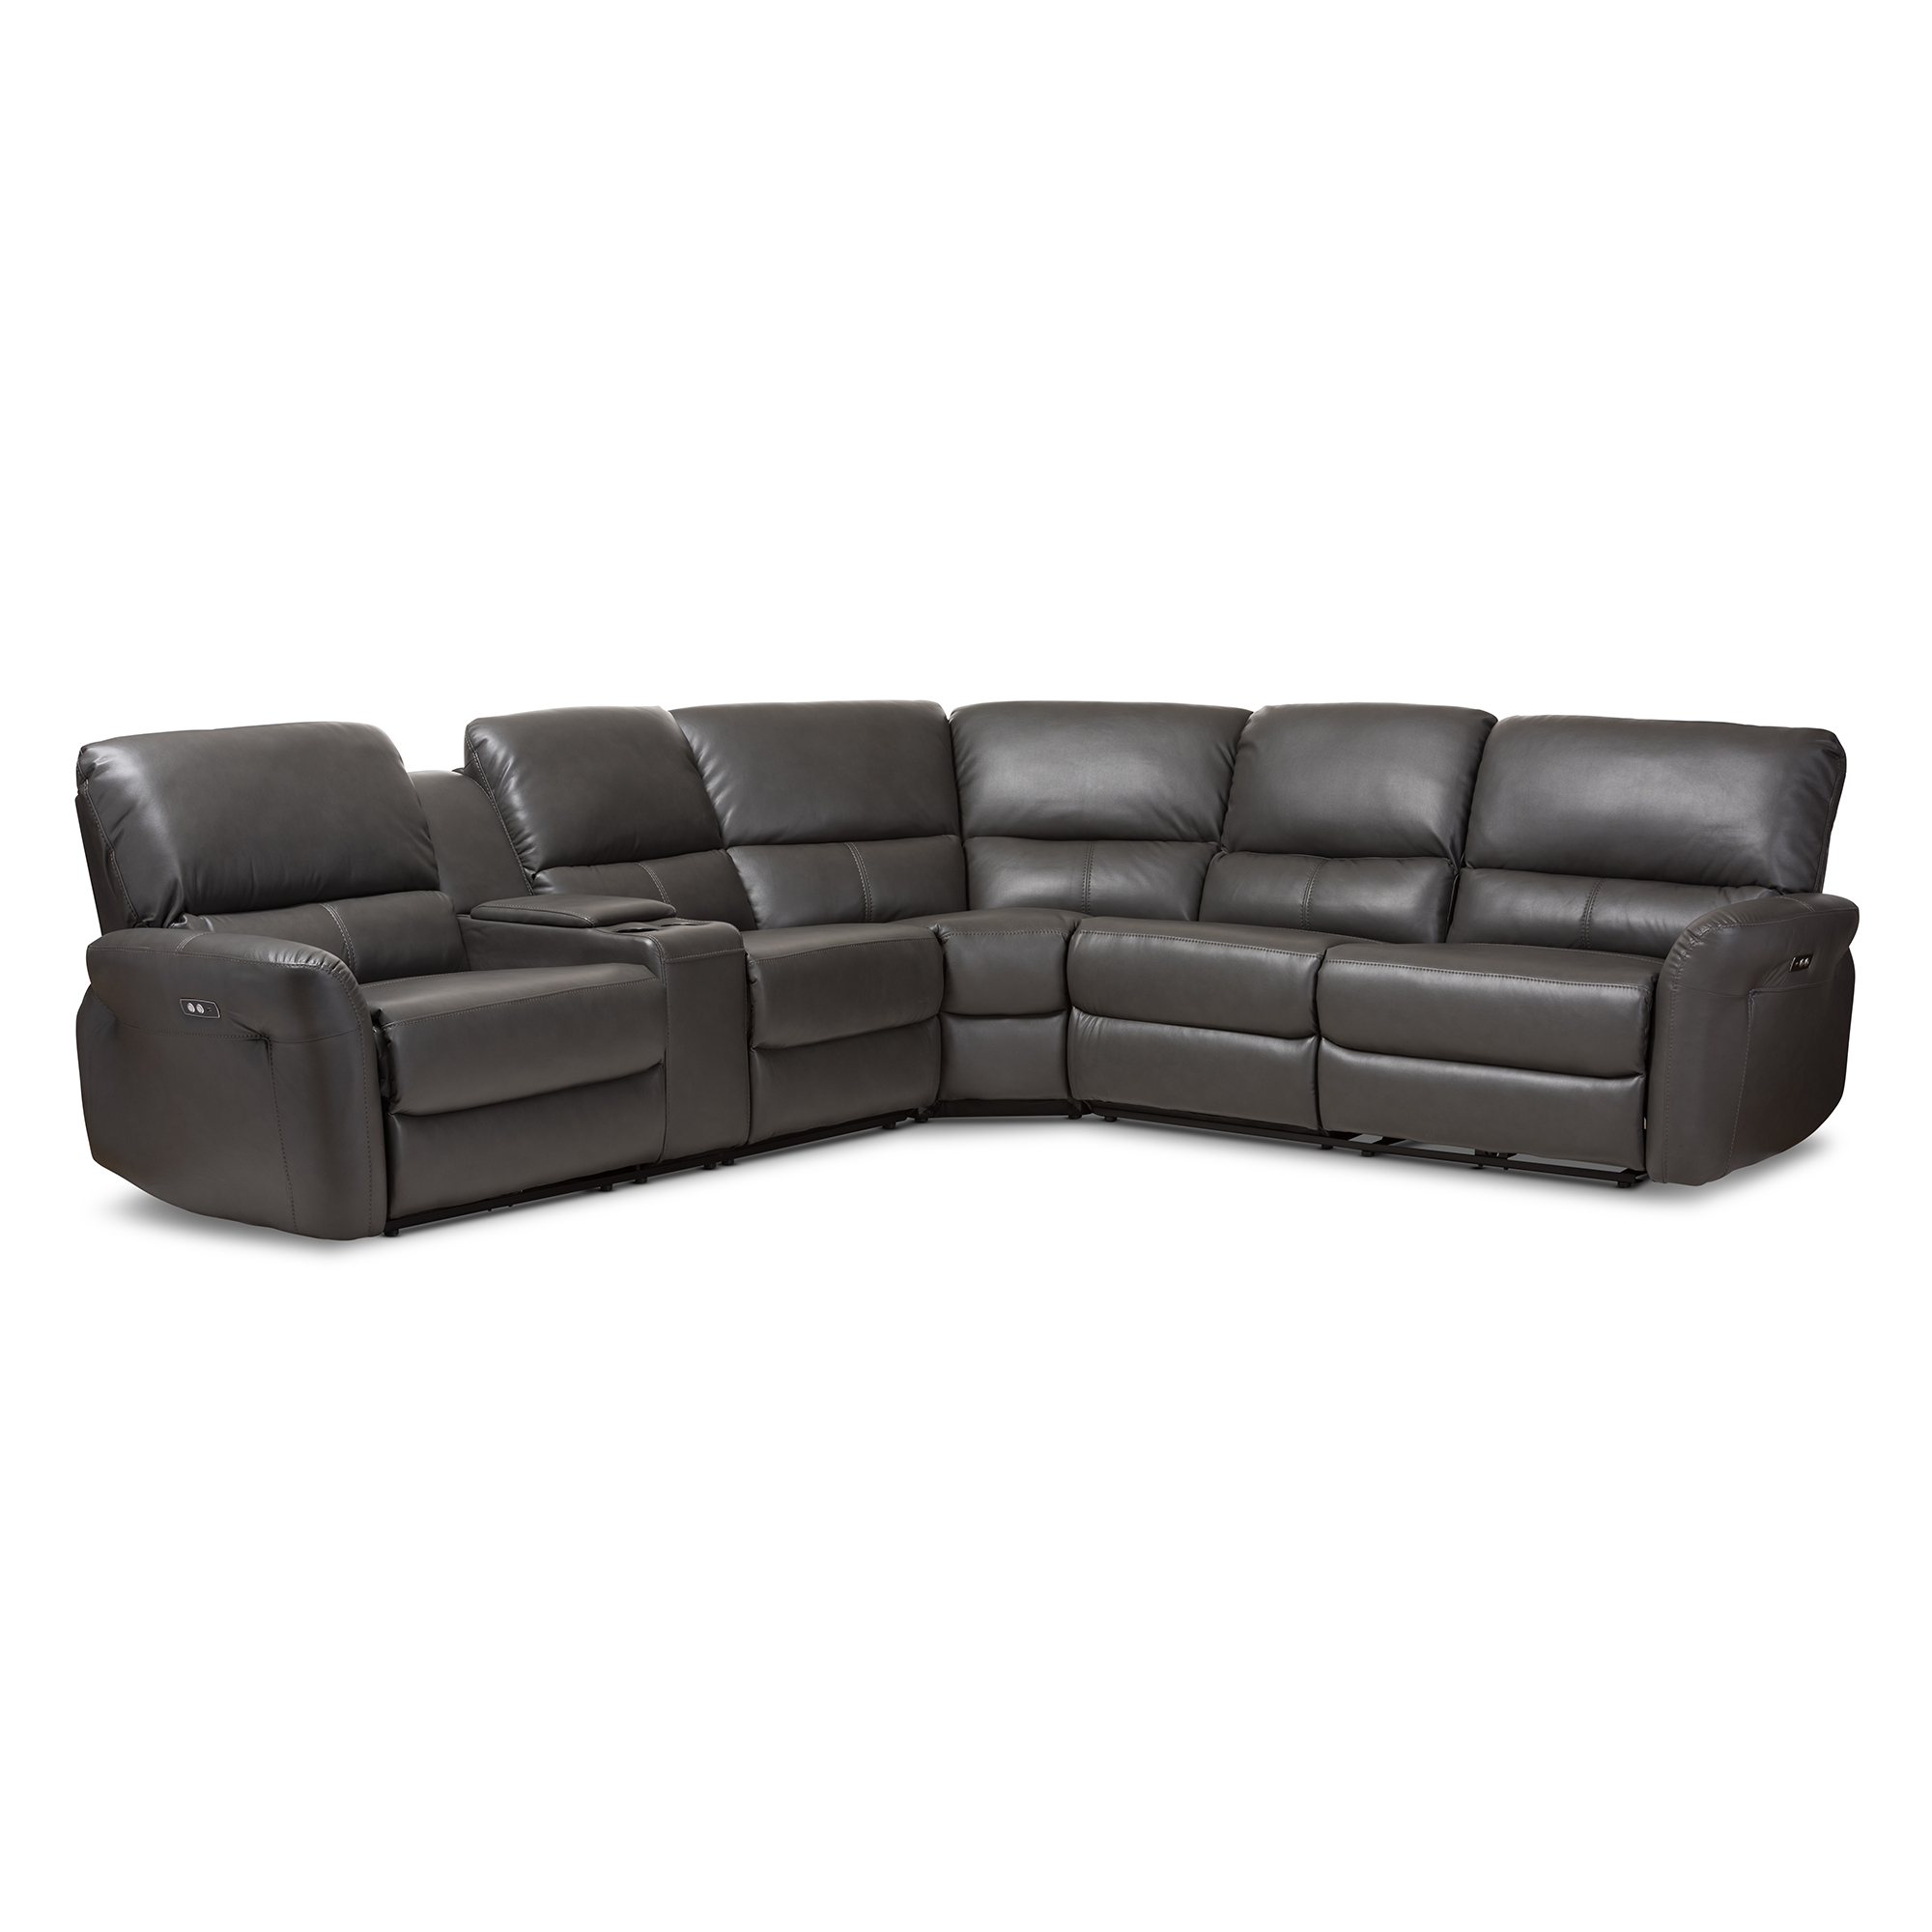 Baxton Studio Amaris Modern And Contemporary Grey Bonded Leather 5 Piece  Power Reclining Sectional Sofa